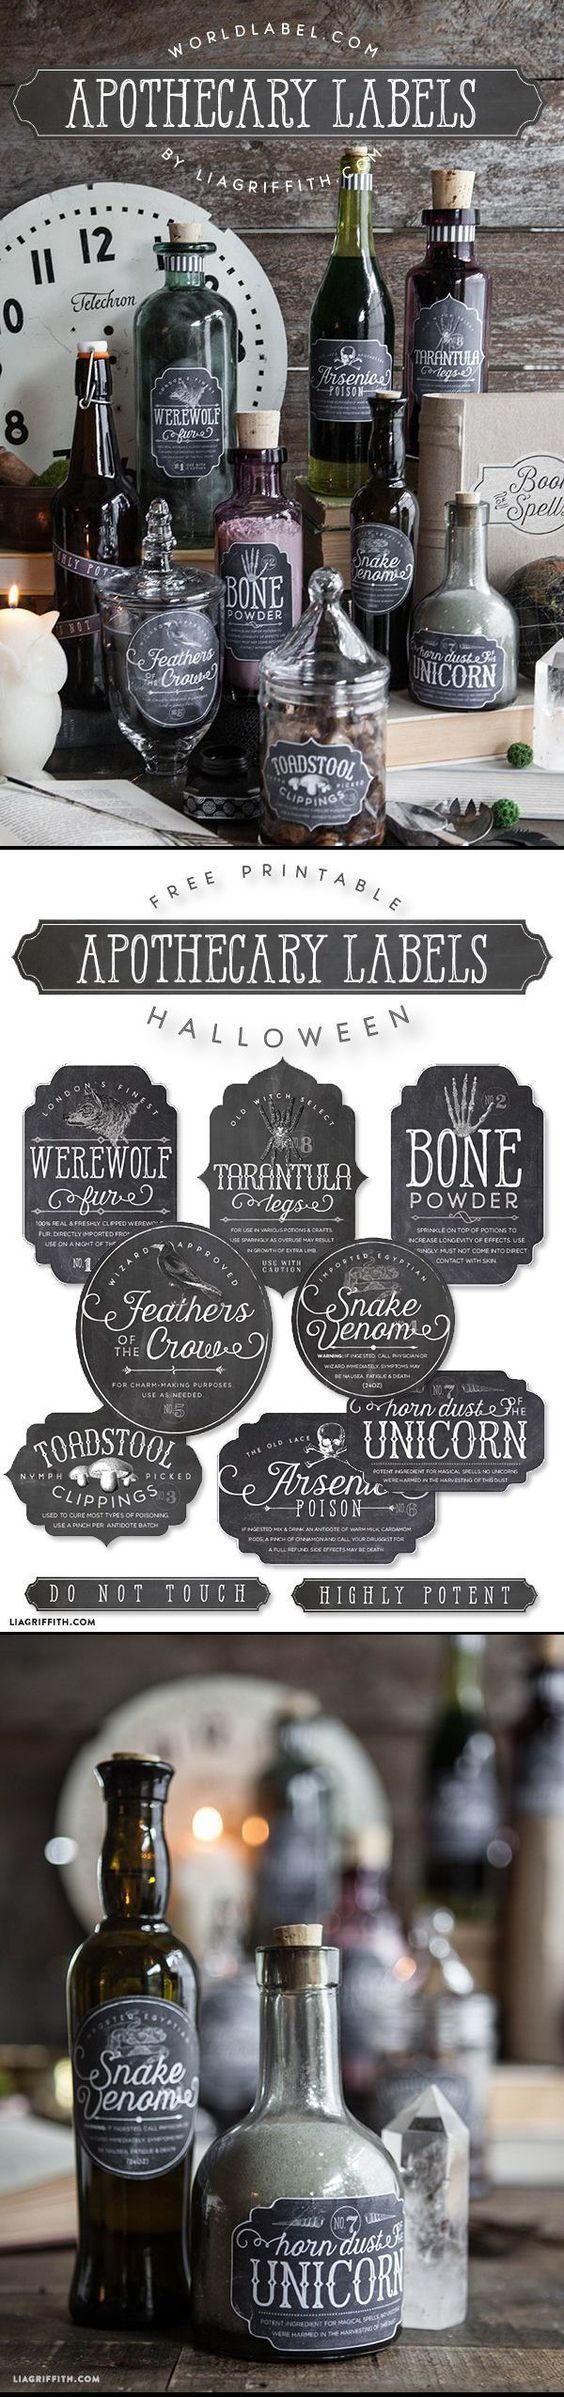 free printable apothecary labels for halloween